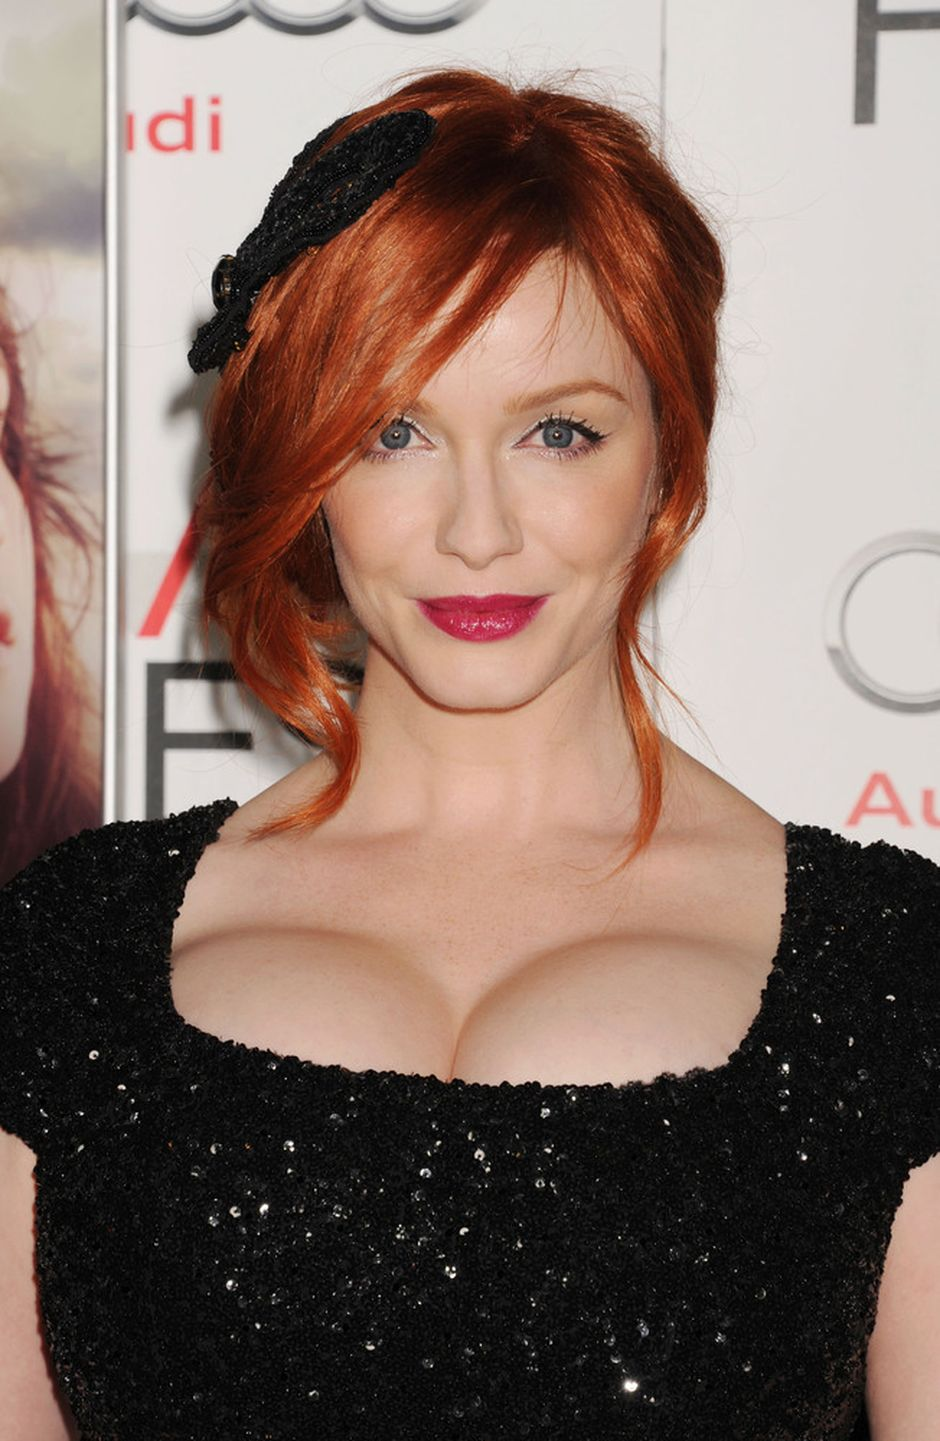 Awesome Hottest Redheads Will Make You Look Beautiful and Stunning 9